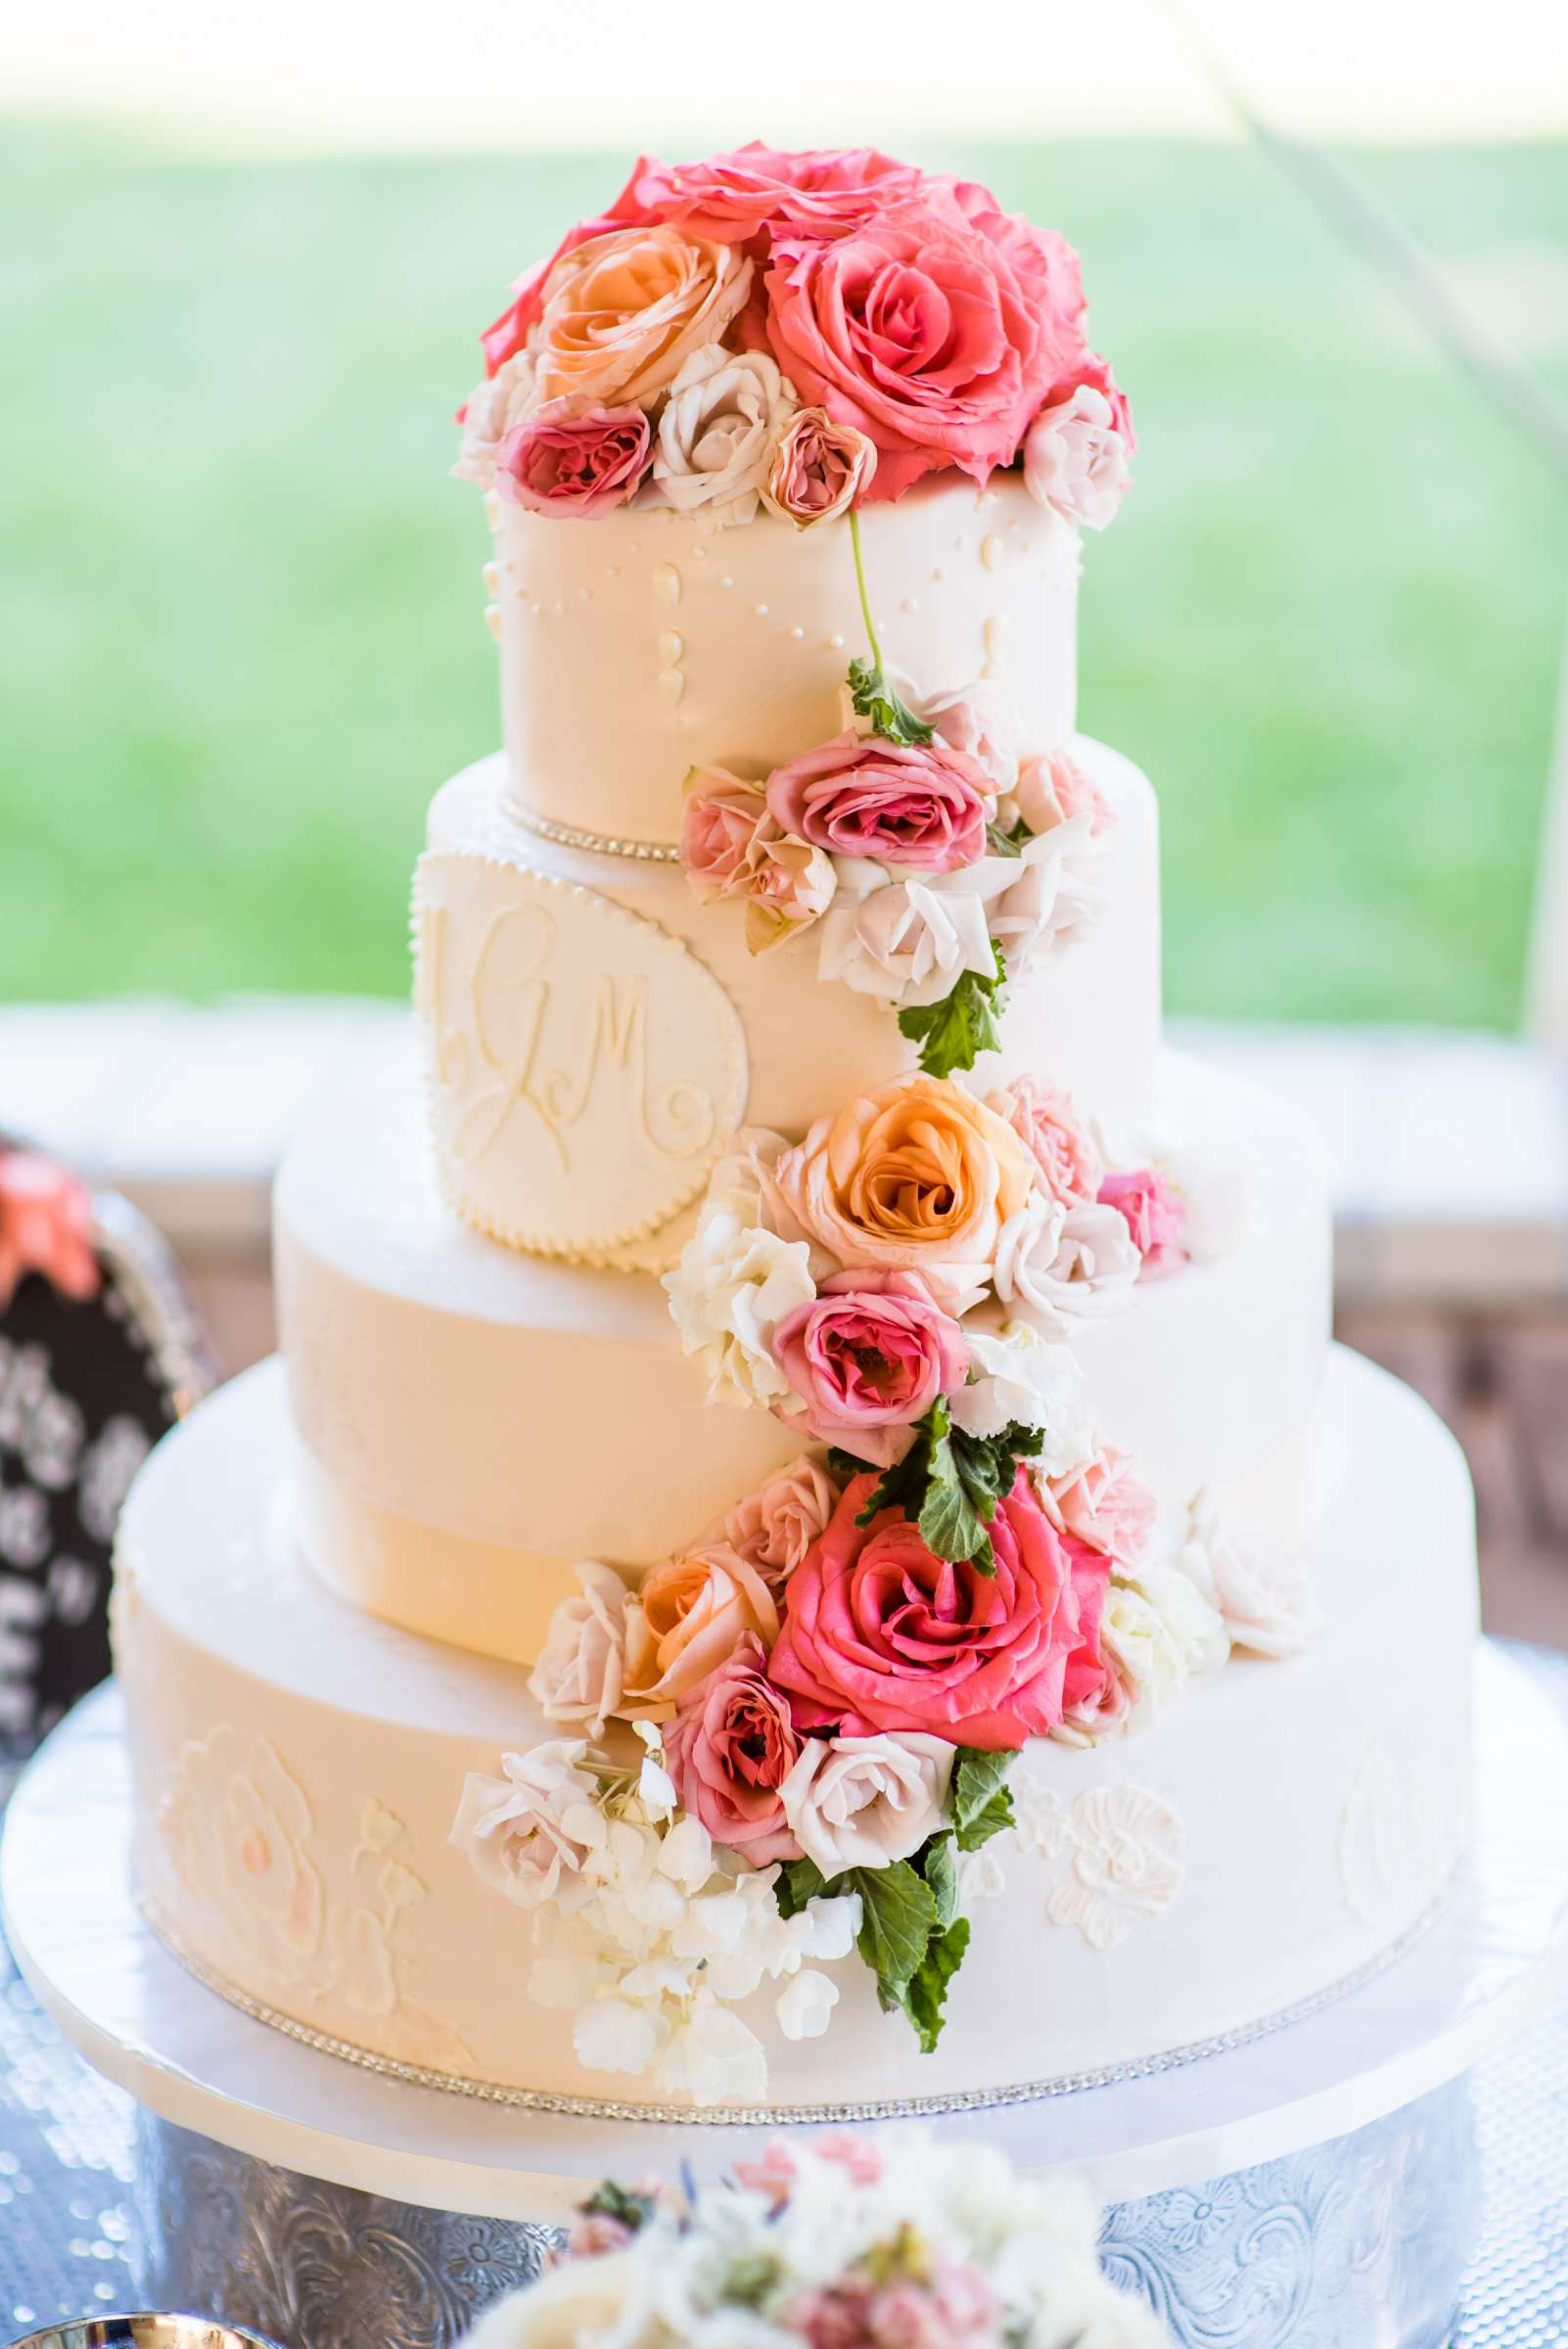 Pics Of Wedding Cakes  Wedding Cake Gallery